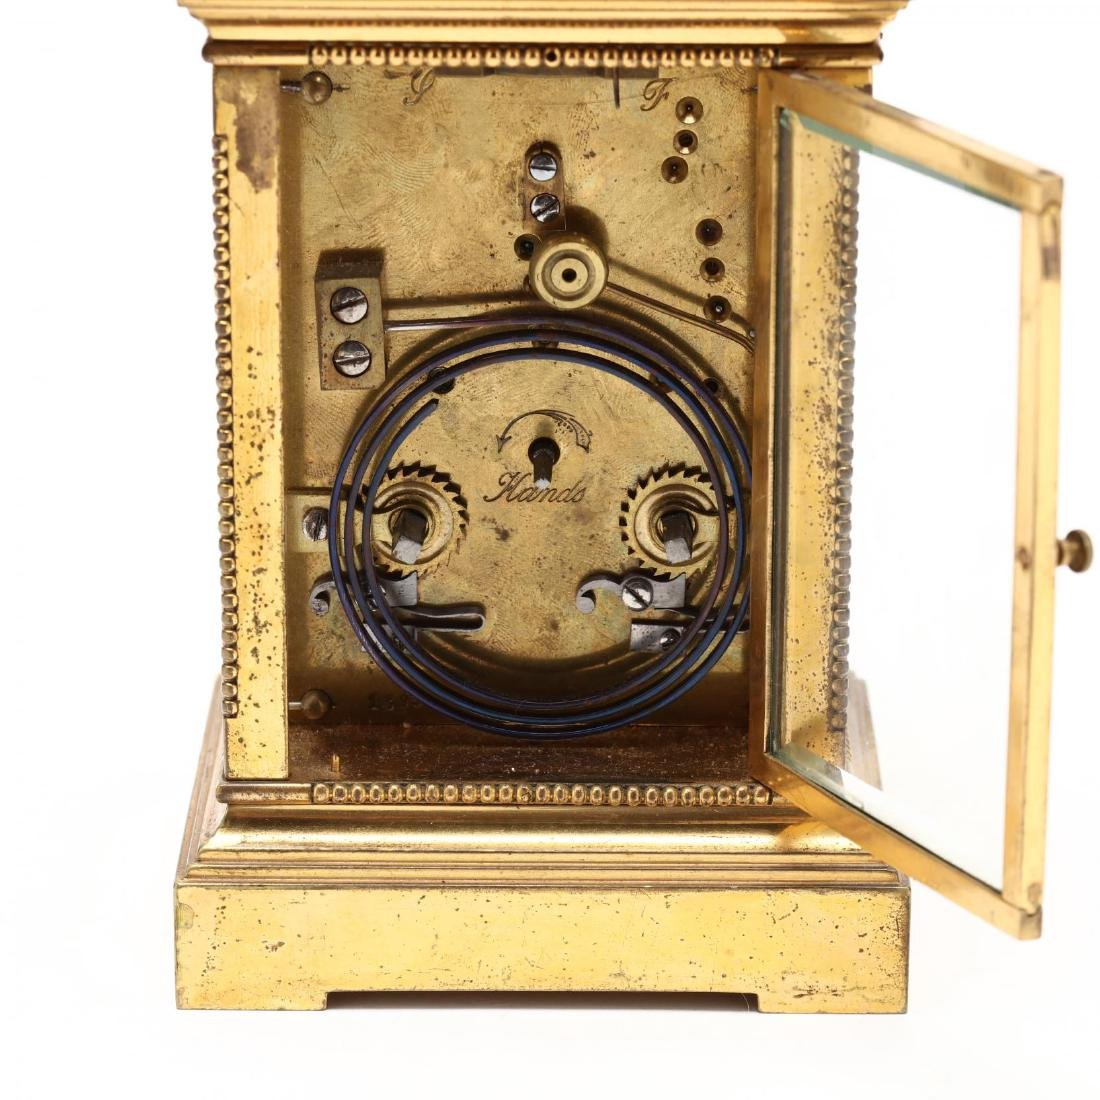 Mitchell Vance & Co., Gilt Bronze Carriage Clock - 5